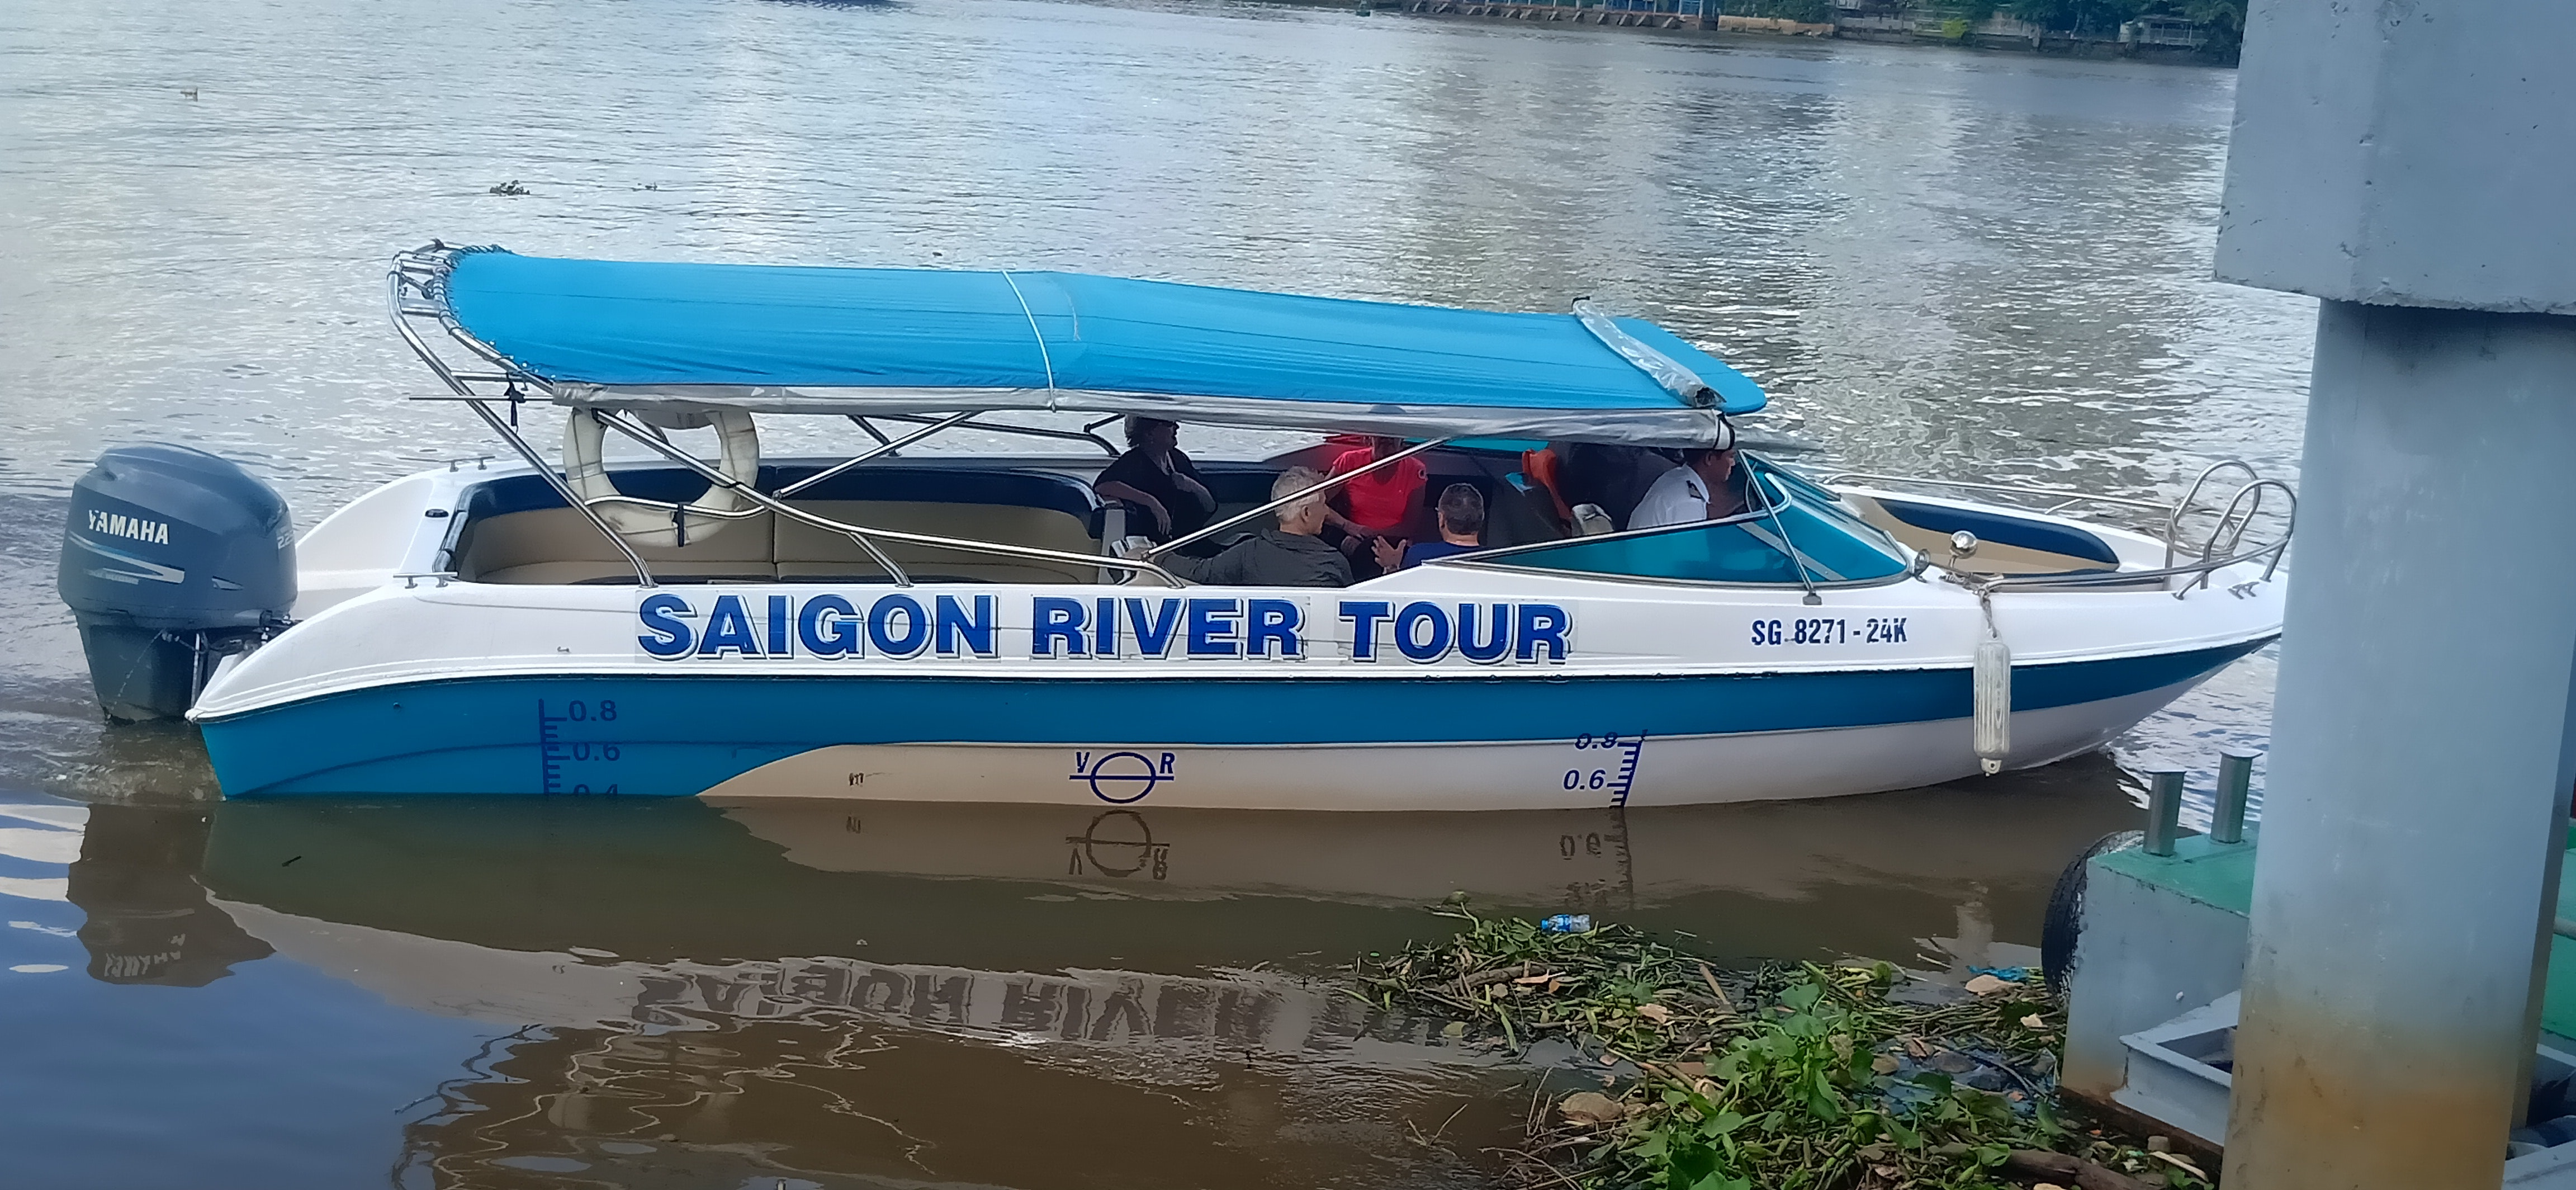 Saigon River Tour